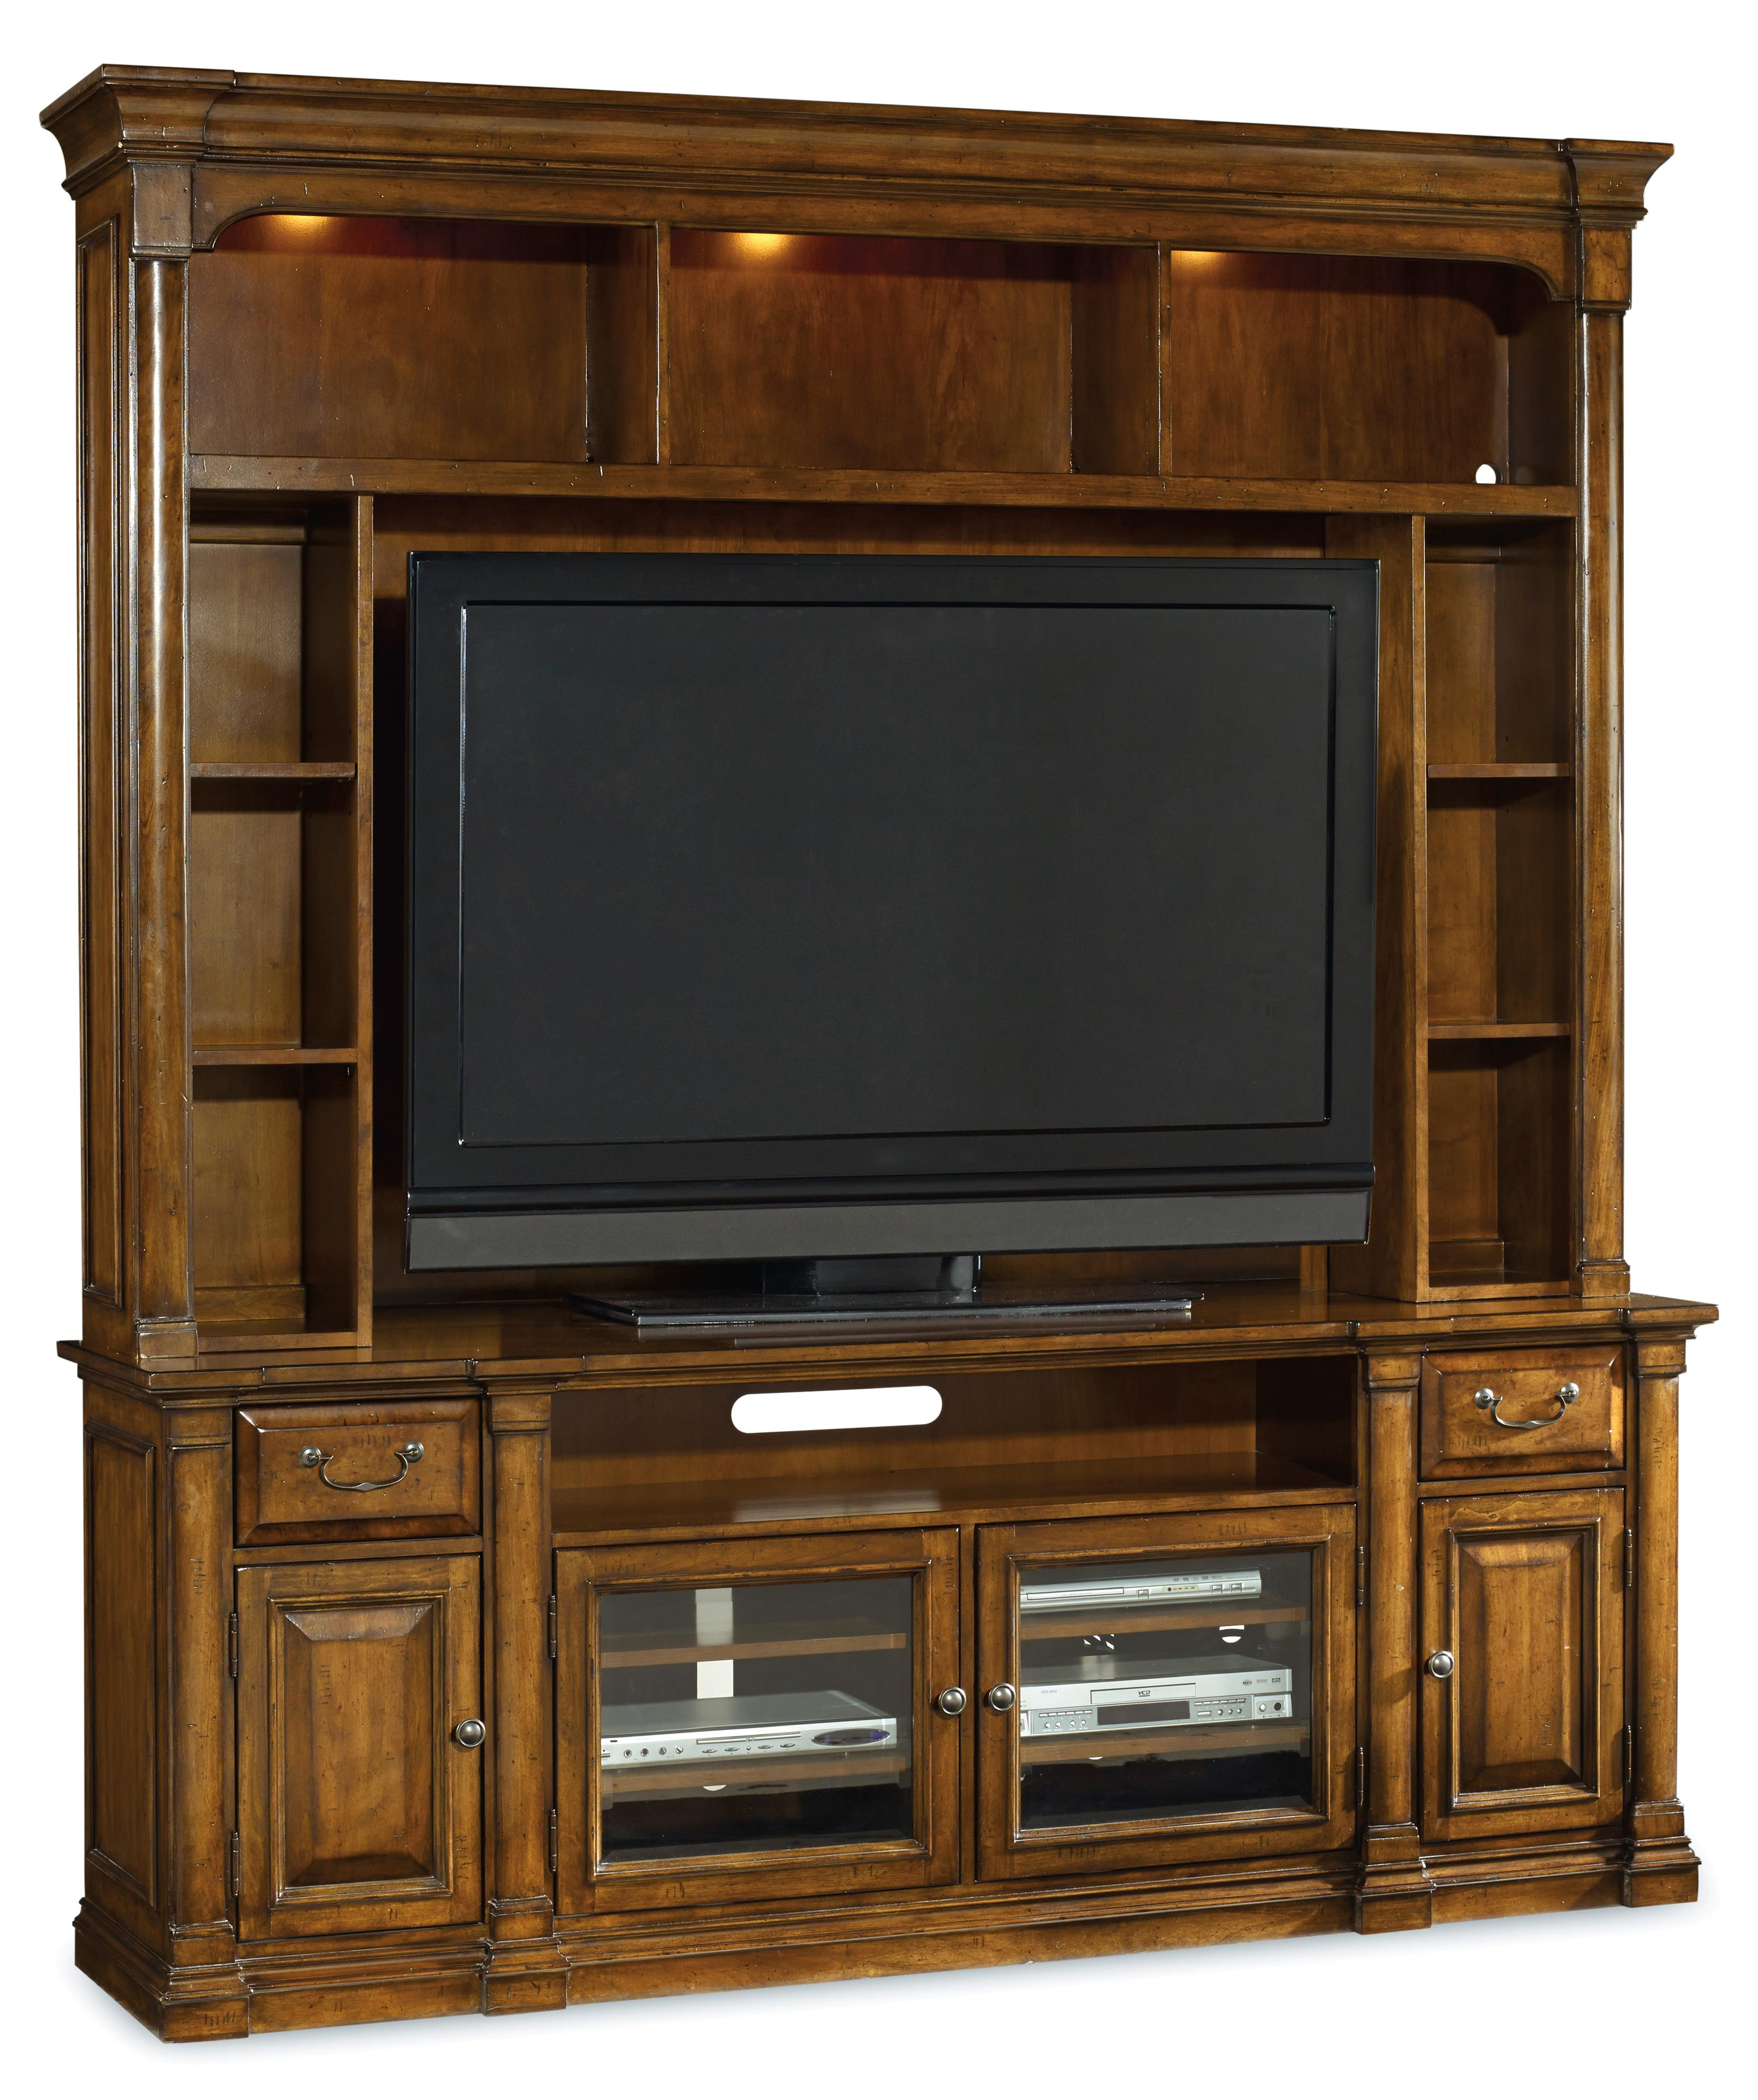 Tynecastle Entertainment Group by Hooker Furniture at Upper Room Home Furnishings